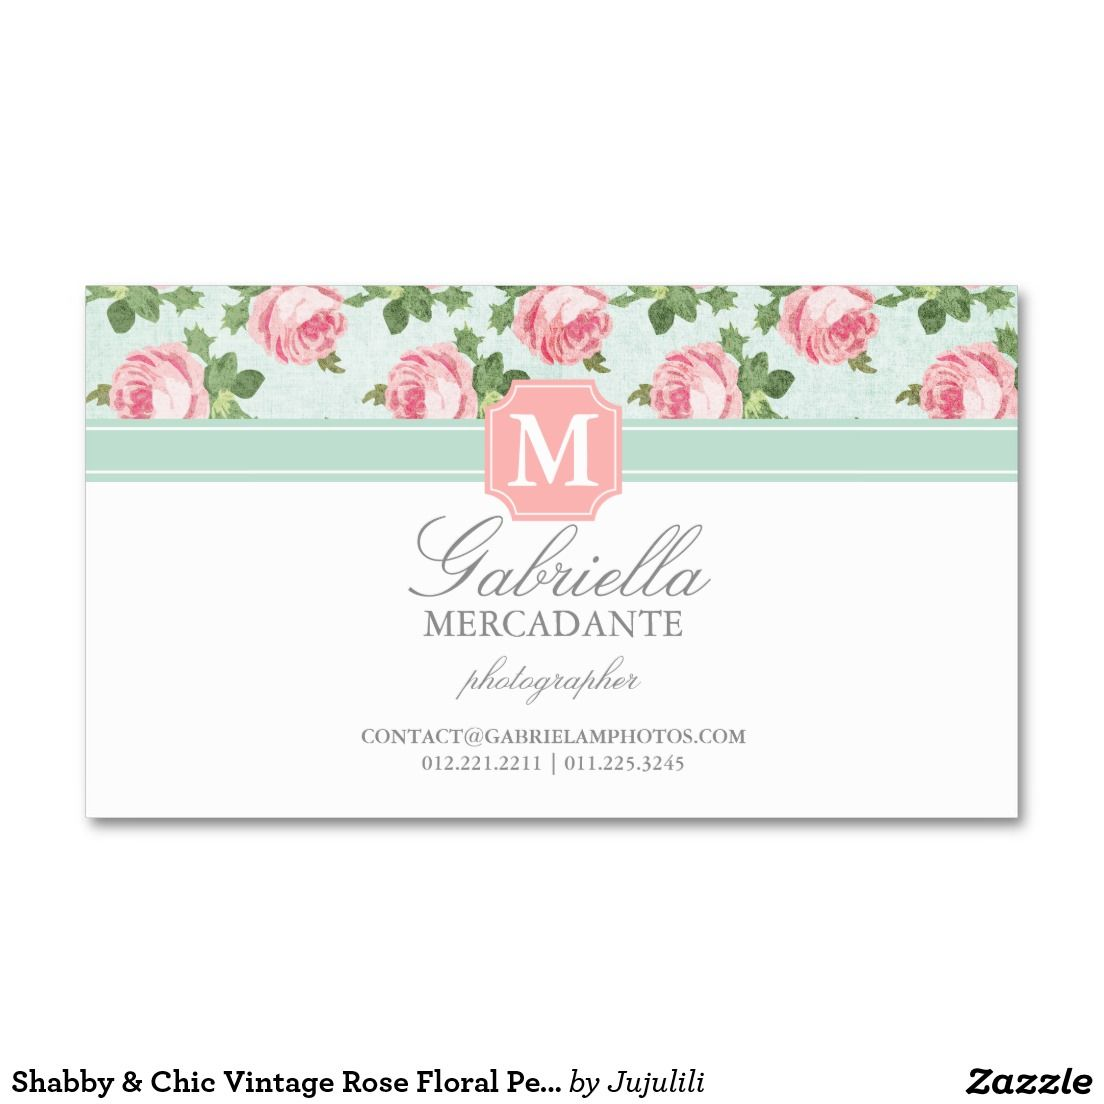 Shabby Chic Vintage Rose Floral Personalised Business Card